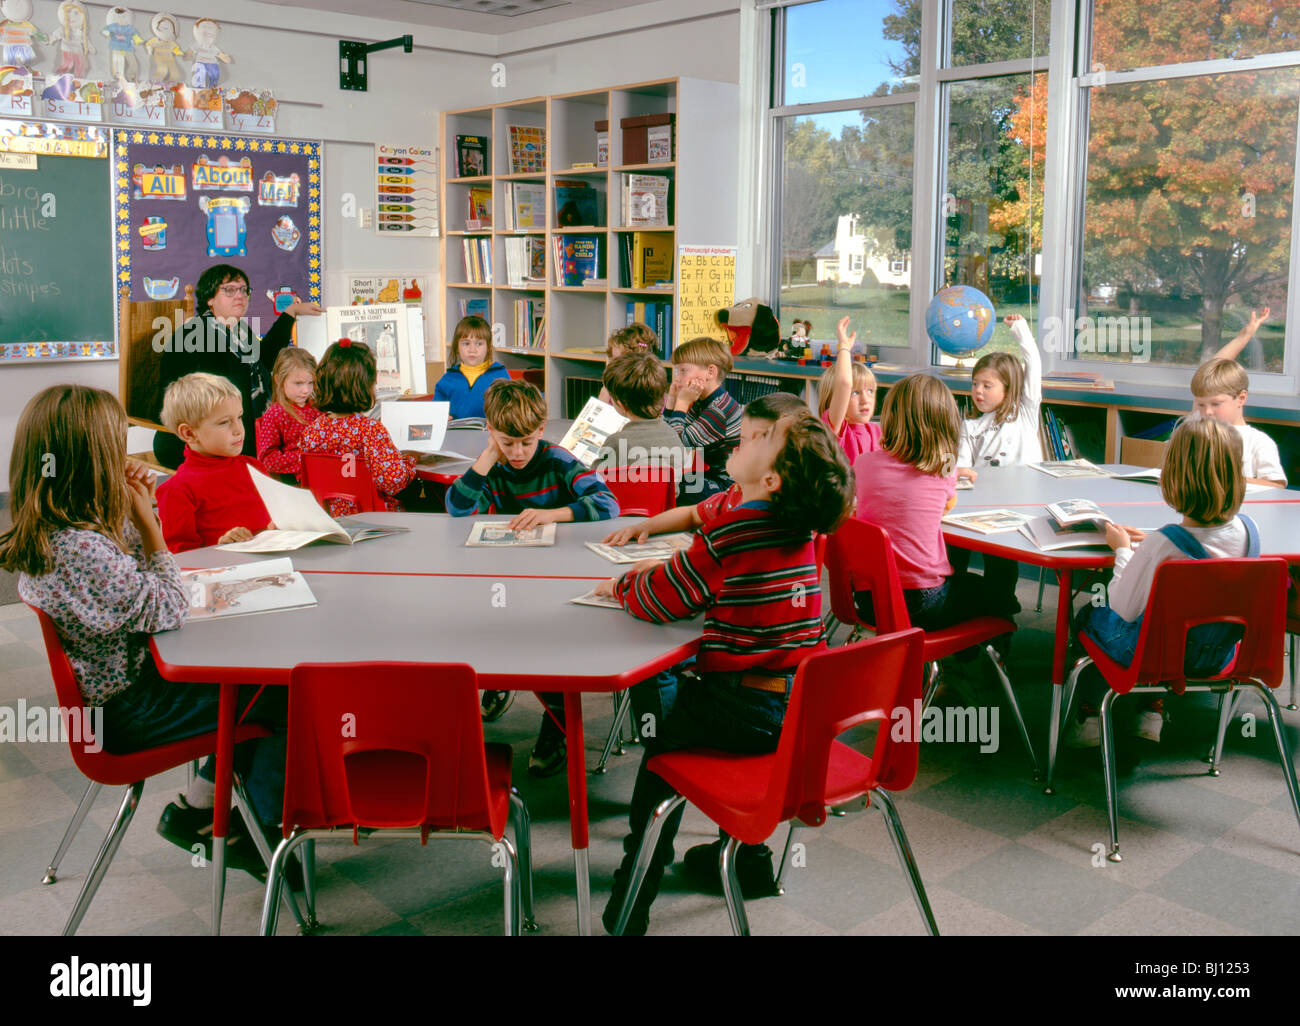 Elementary Classroom Students : Teacher and students in an elementary school classroom